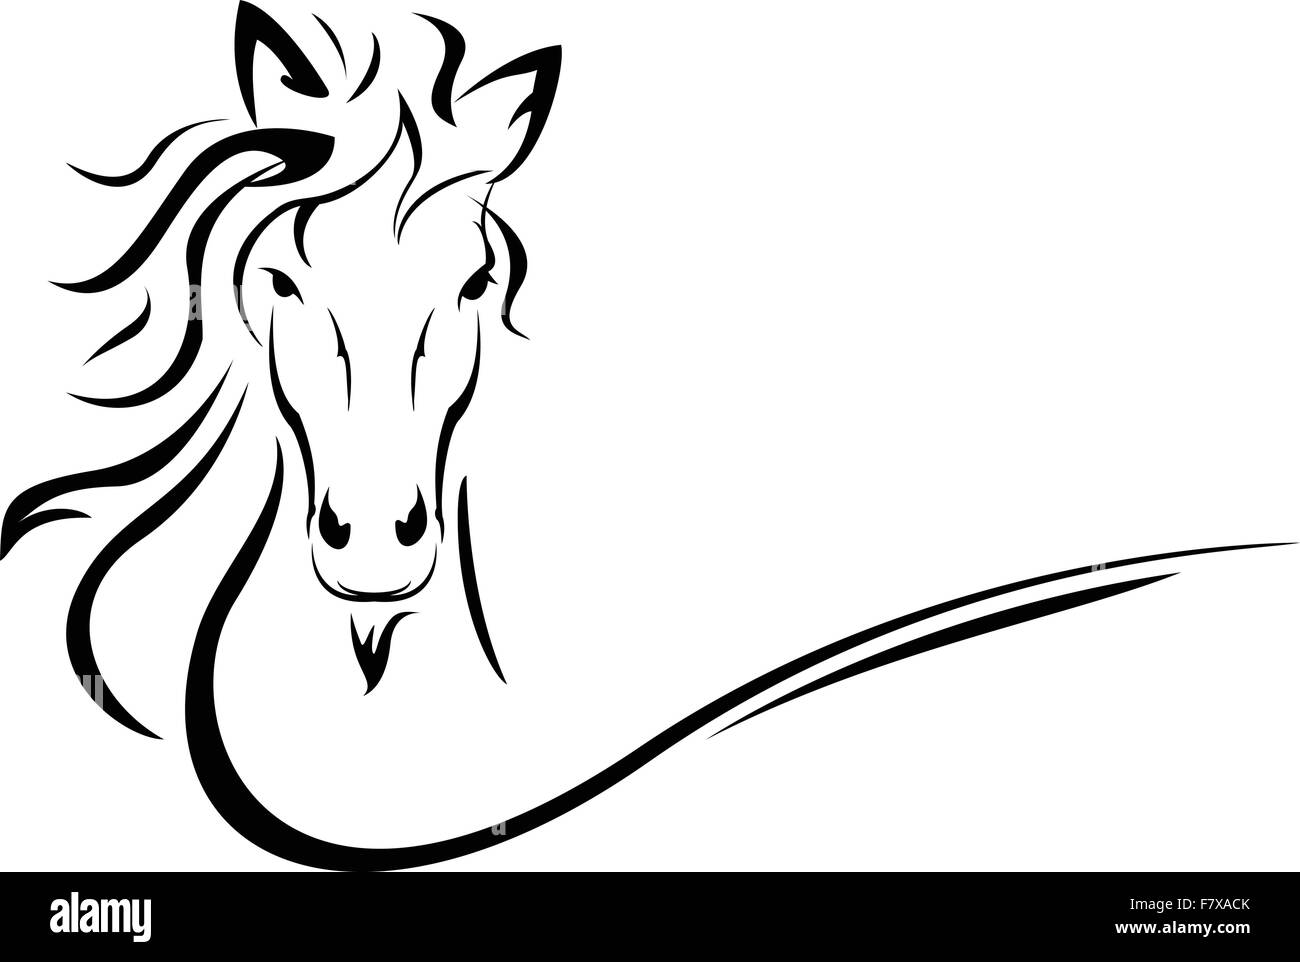 horse head vector stock vector art illustration vector image rh alamy com horse head vector front horse head vector clipart